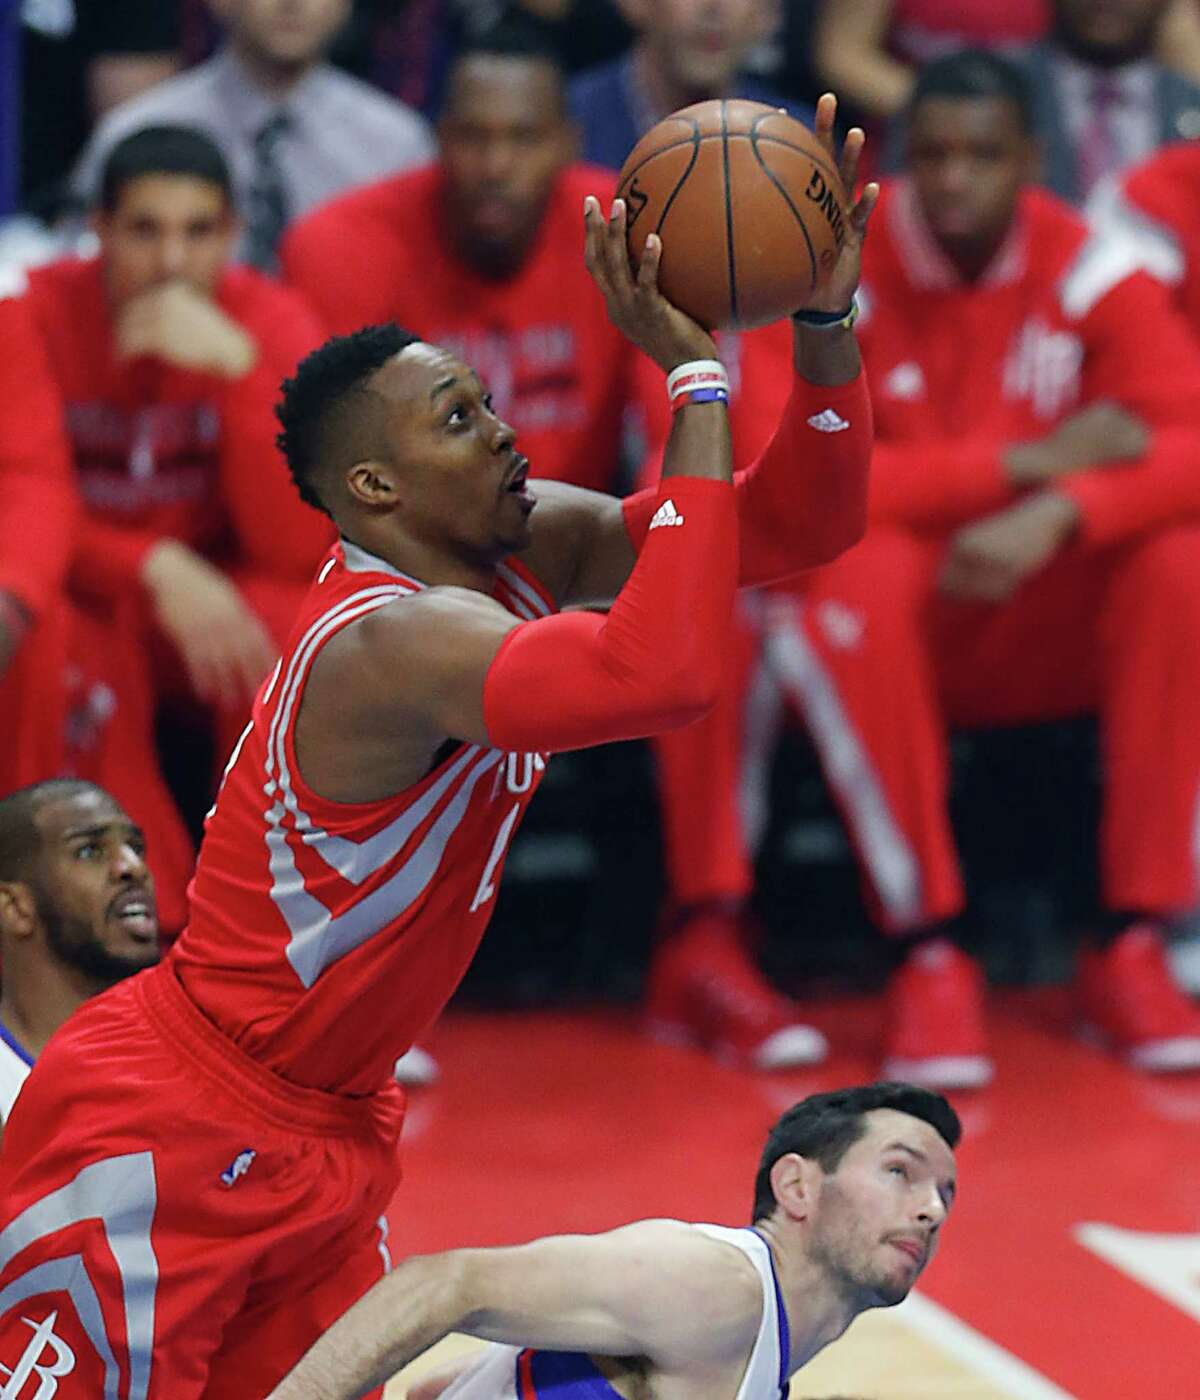 Rockets center Dwight Howard puts up a shot over Clippers guard J.J. Redick on his way to 20 points.